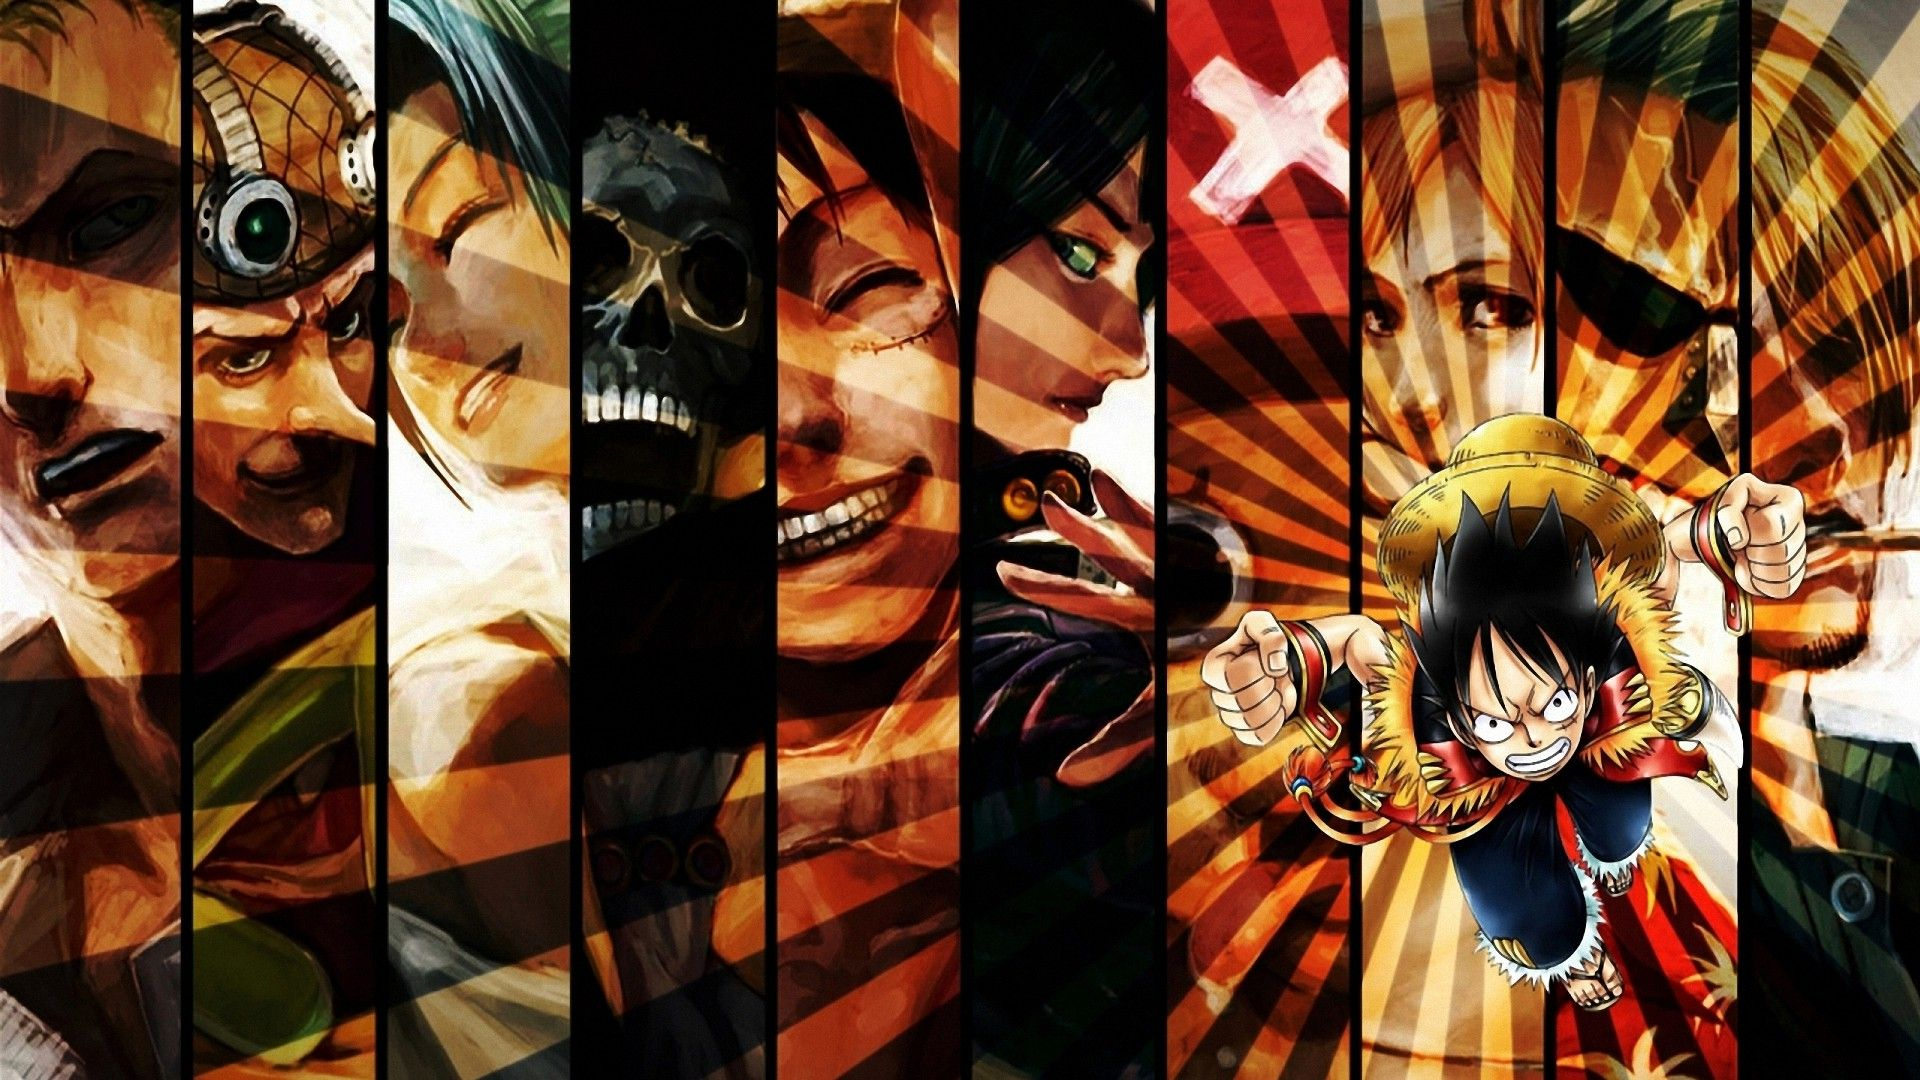 One Piece Luffy Anime Hd Wallpapers Desktop Backgrounds Anime Wallpaper Hd Anime Wallpapers One Piece Wallpaper Iphone